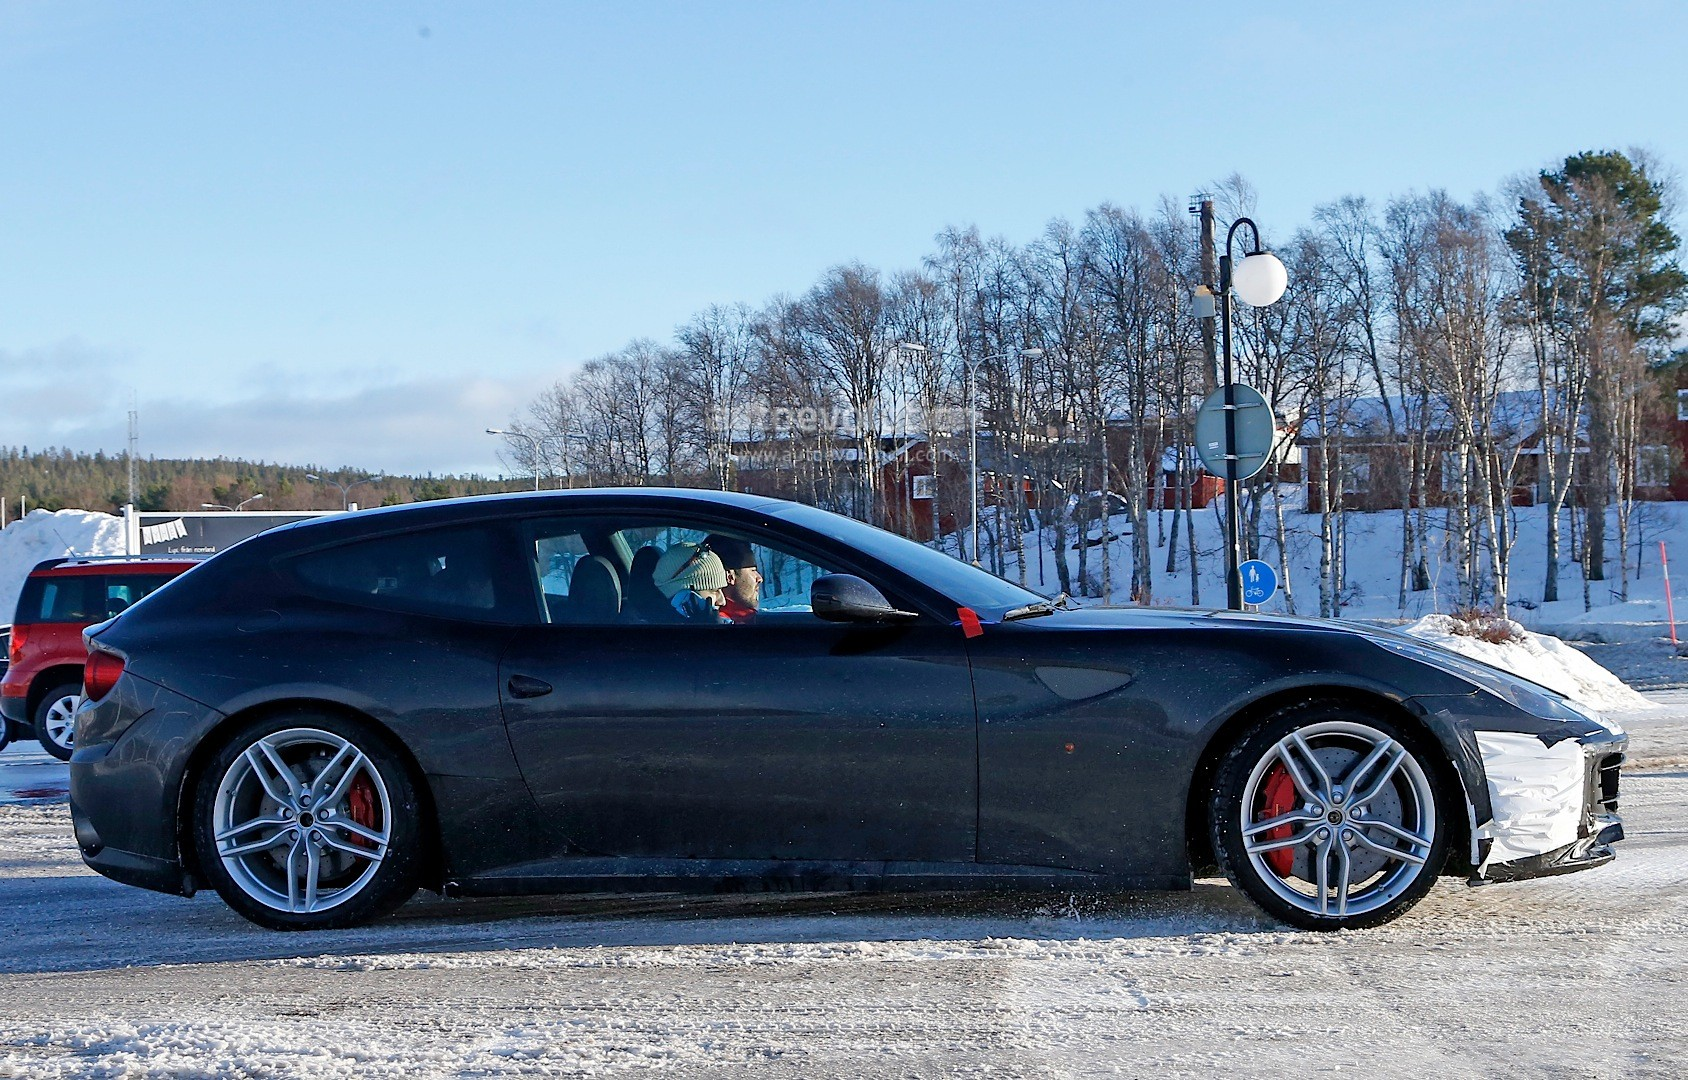 Ferrari FF Facelift Spied in Detail, Will Arrive in 2016 with Turbo V8 Base Model - autoevolution